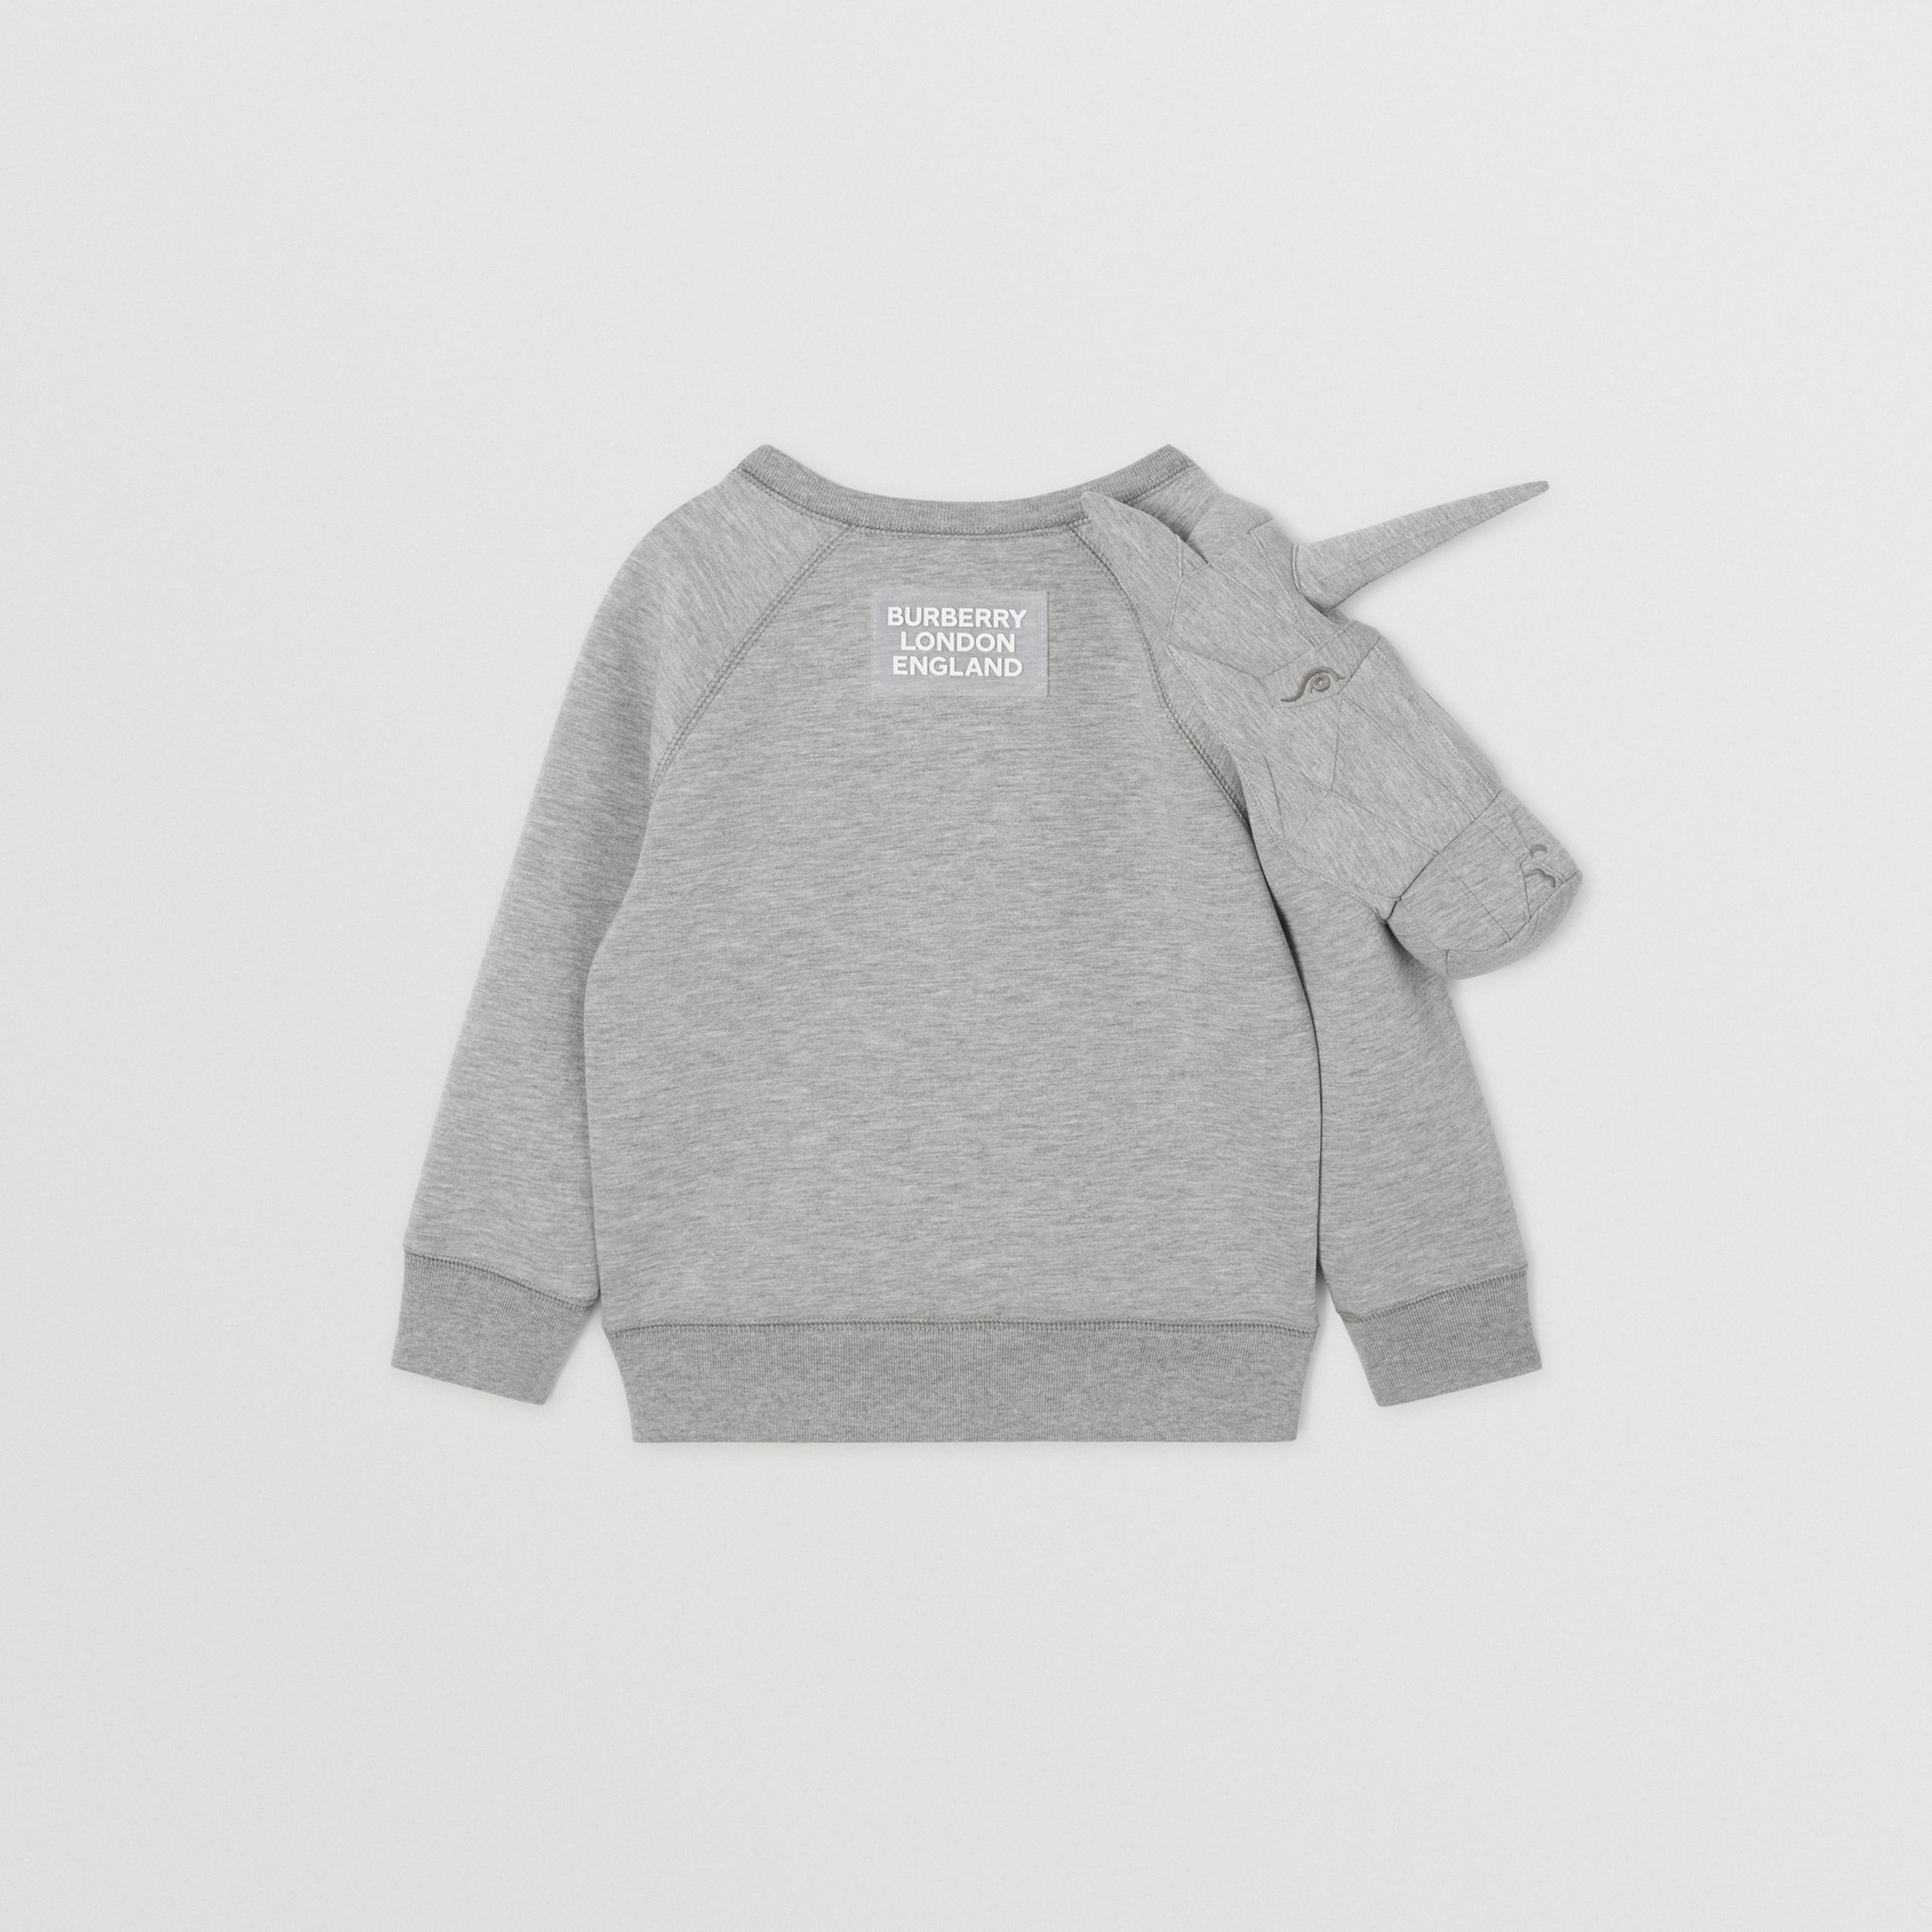 3D Unicorn Sweatshirt – Online Exclusive in Grey Melange | Burberry - 4